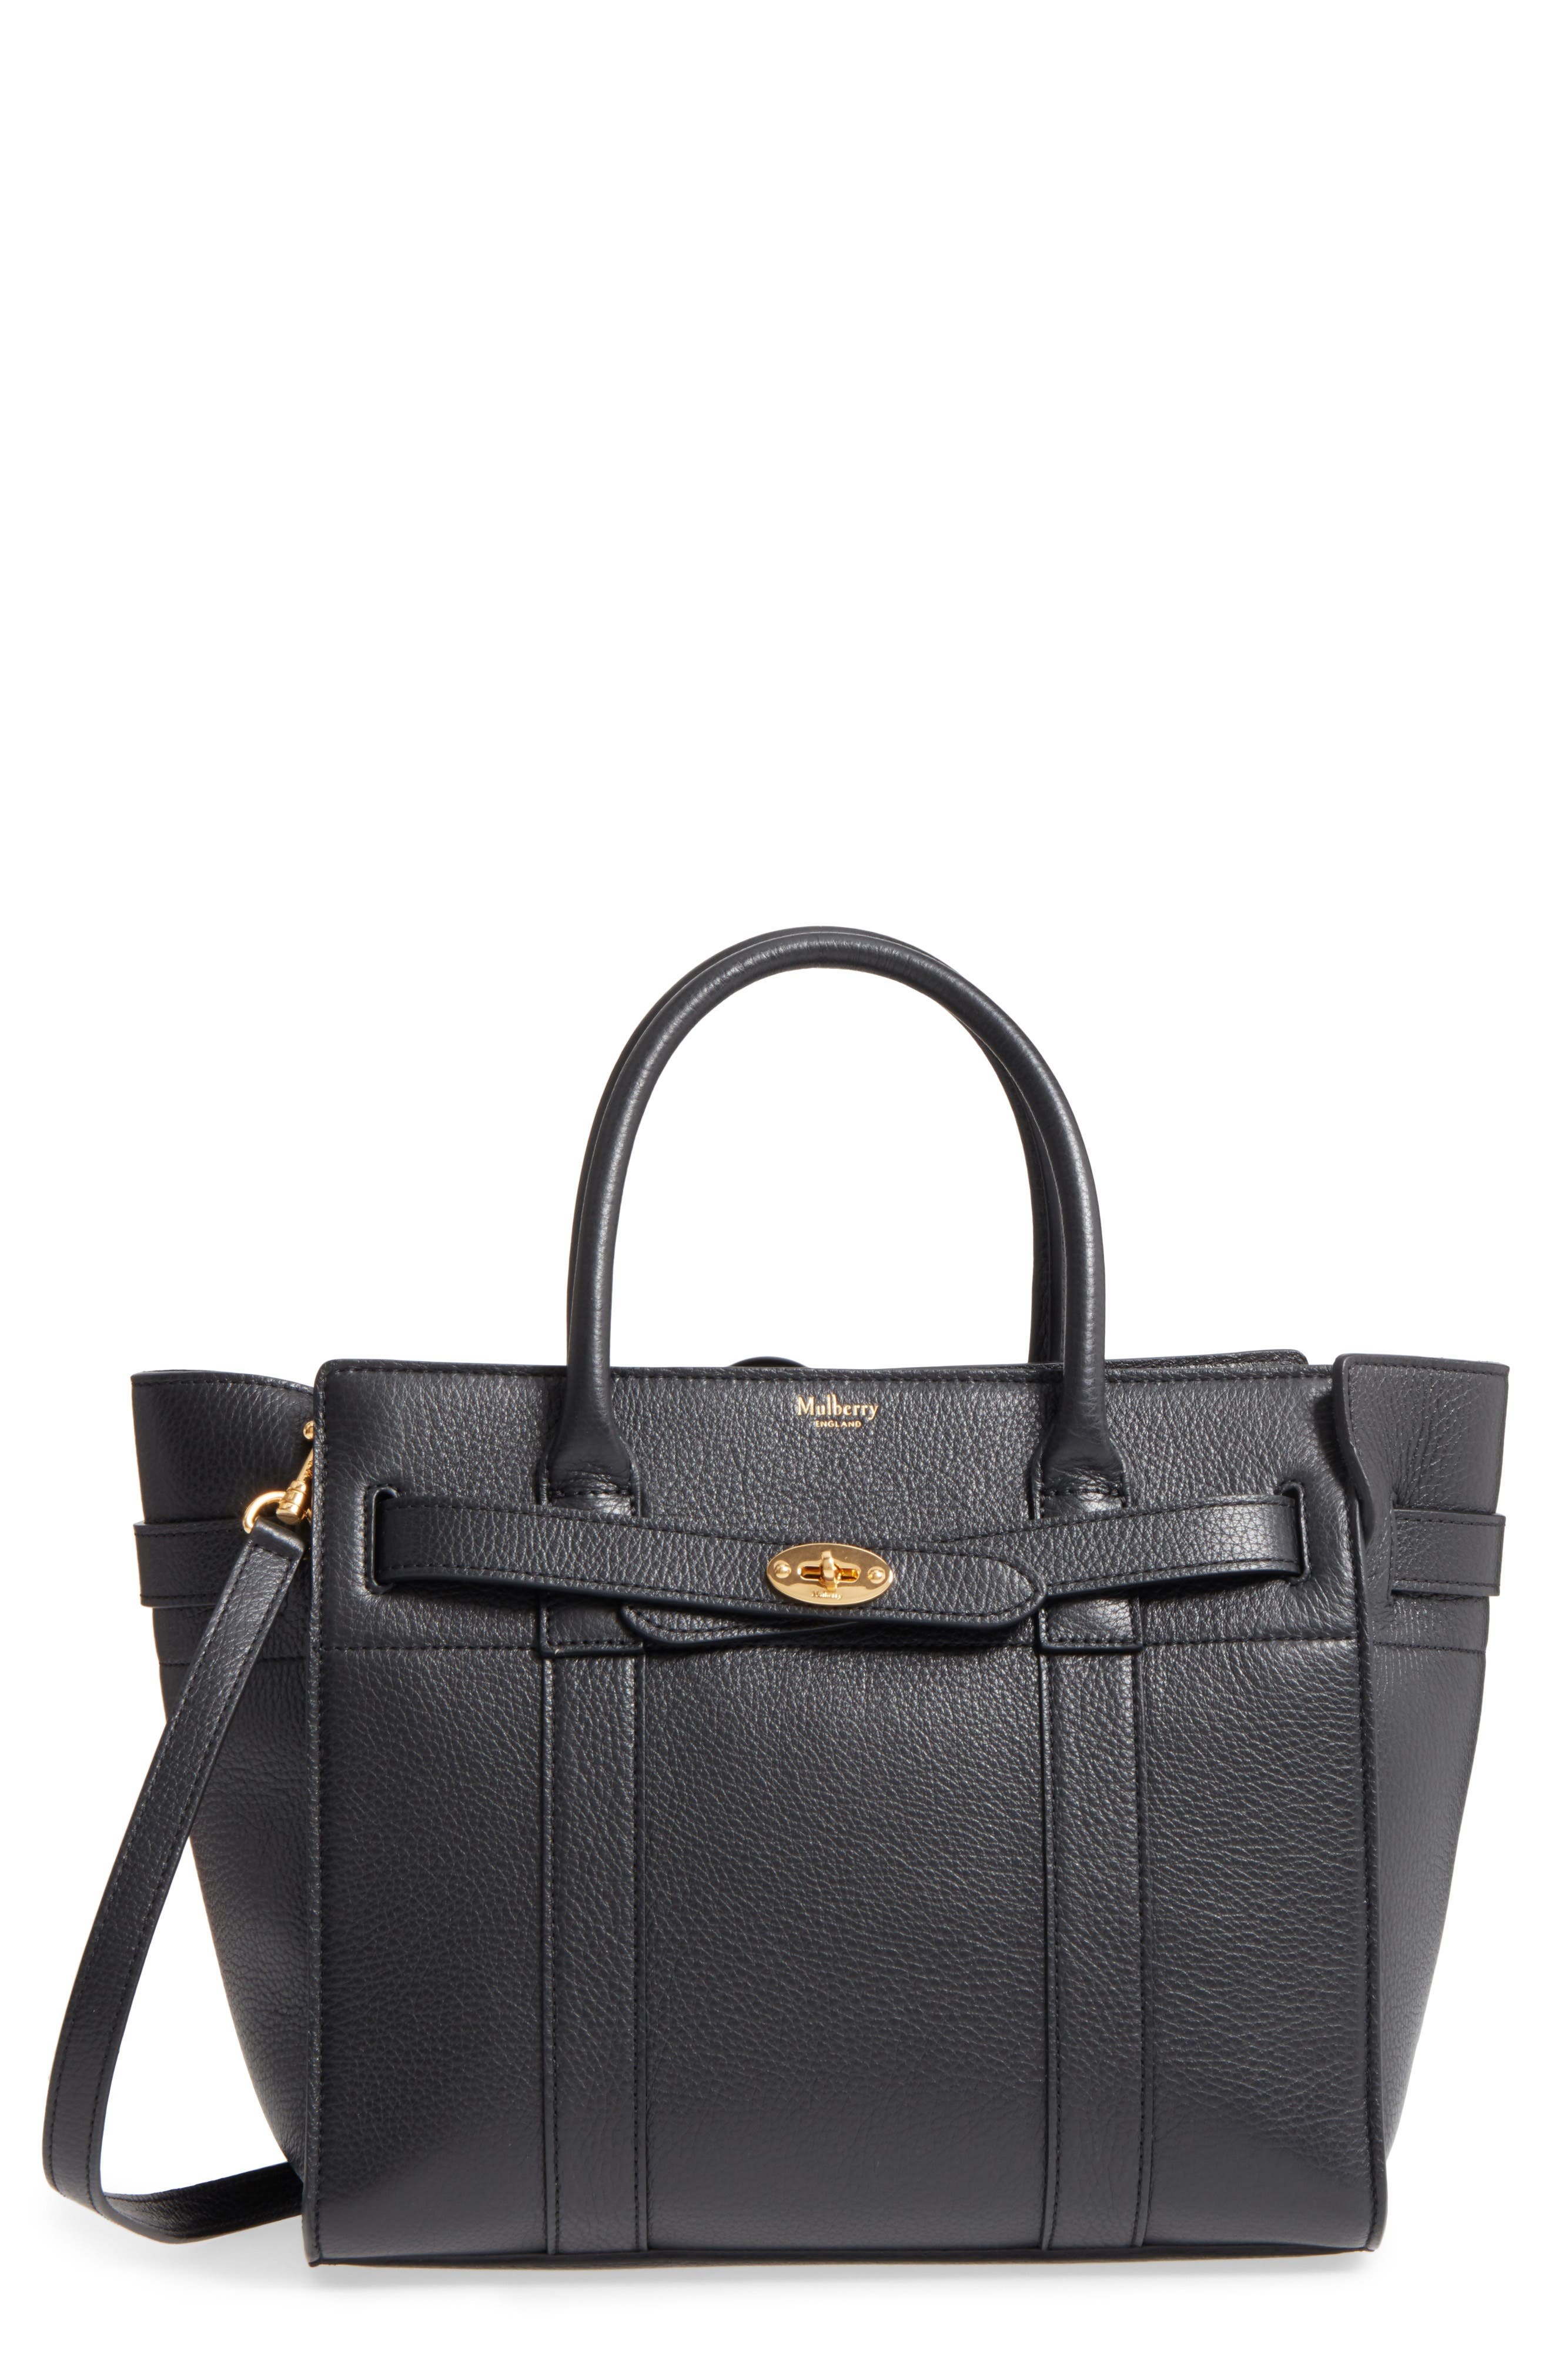 Mulberry Small Zip Bayswater Classic Leather Tote | Nordstrom